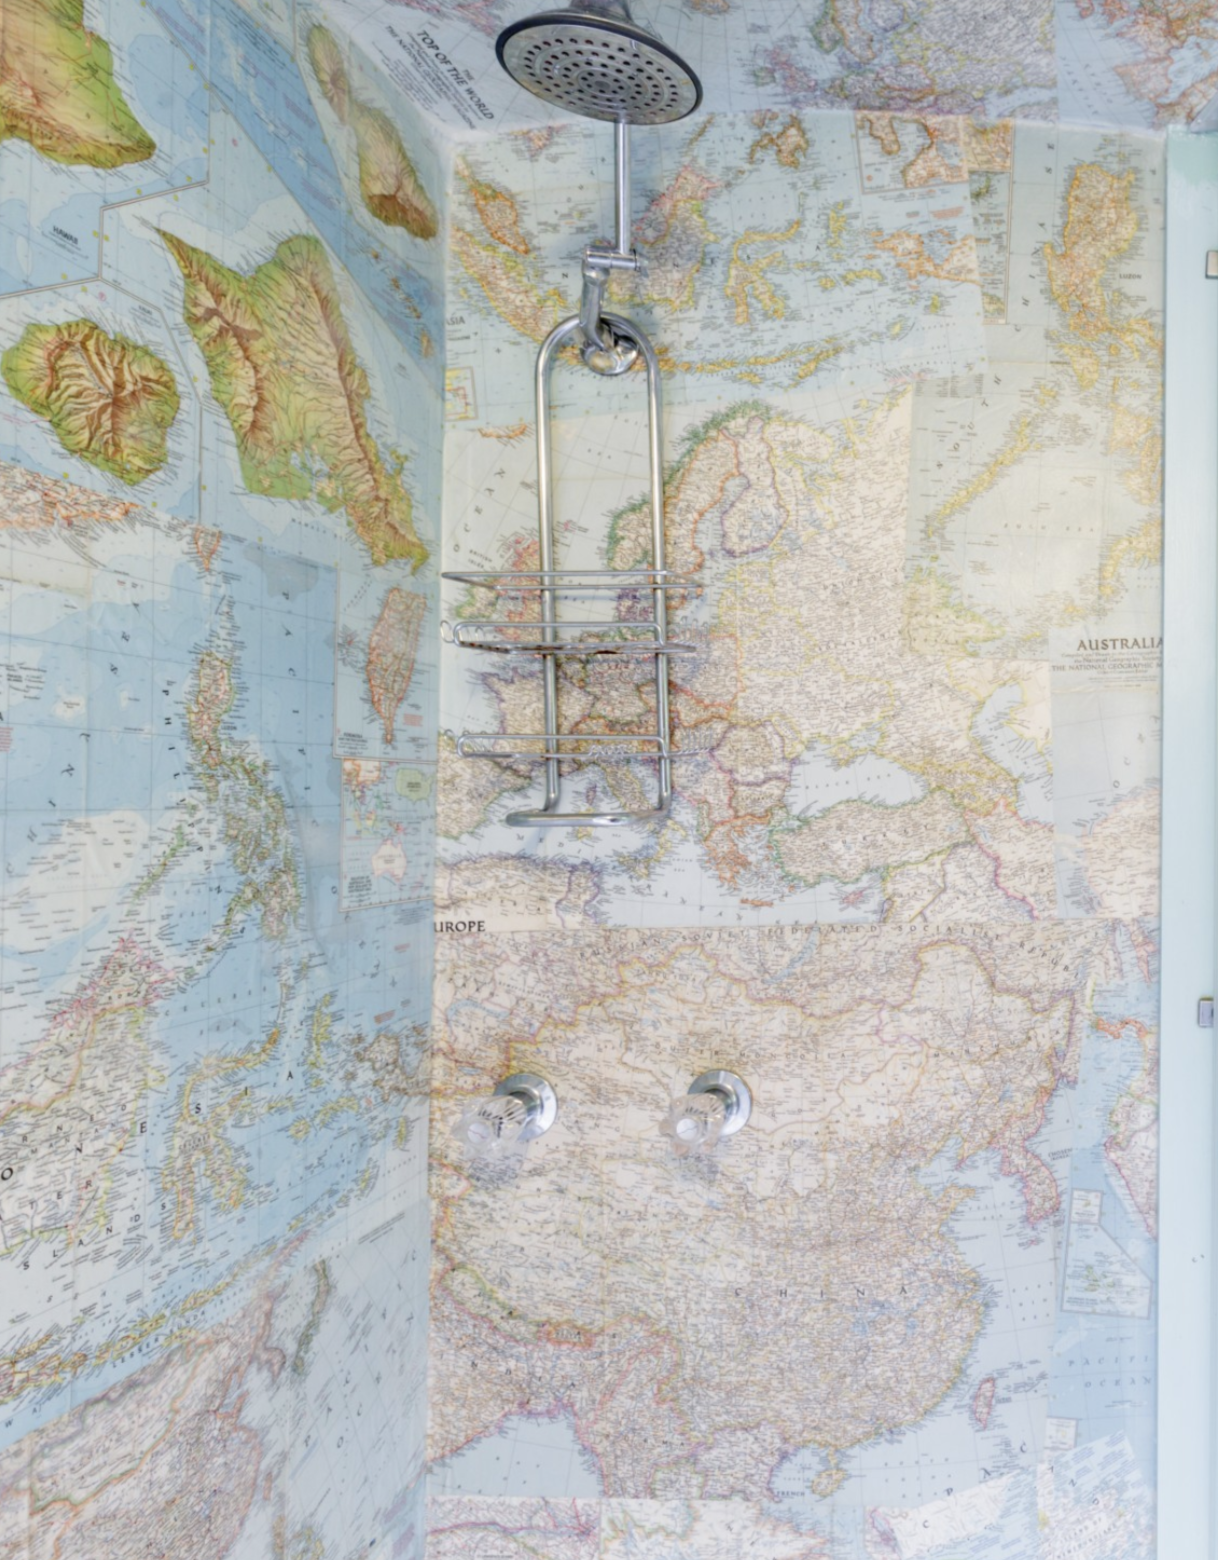 Most Unique USA Airbnbs vintage airstream San Francisco California map shower bathroom wallpaper